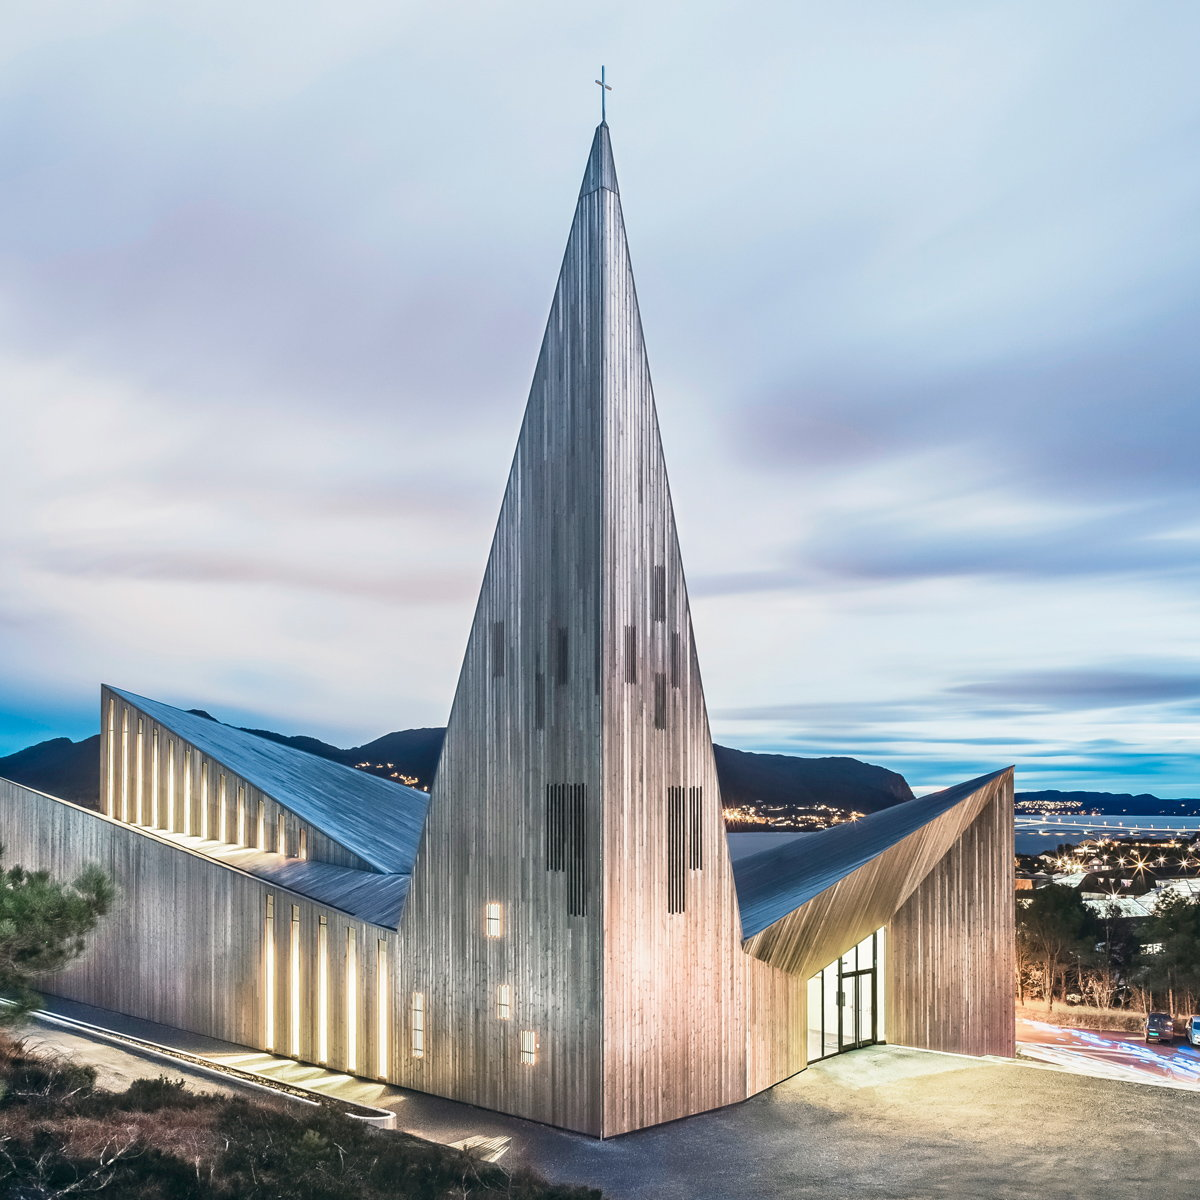 Knarvik Community Church by Reiulf Ramstad Architects